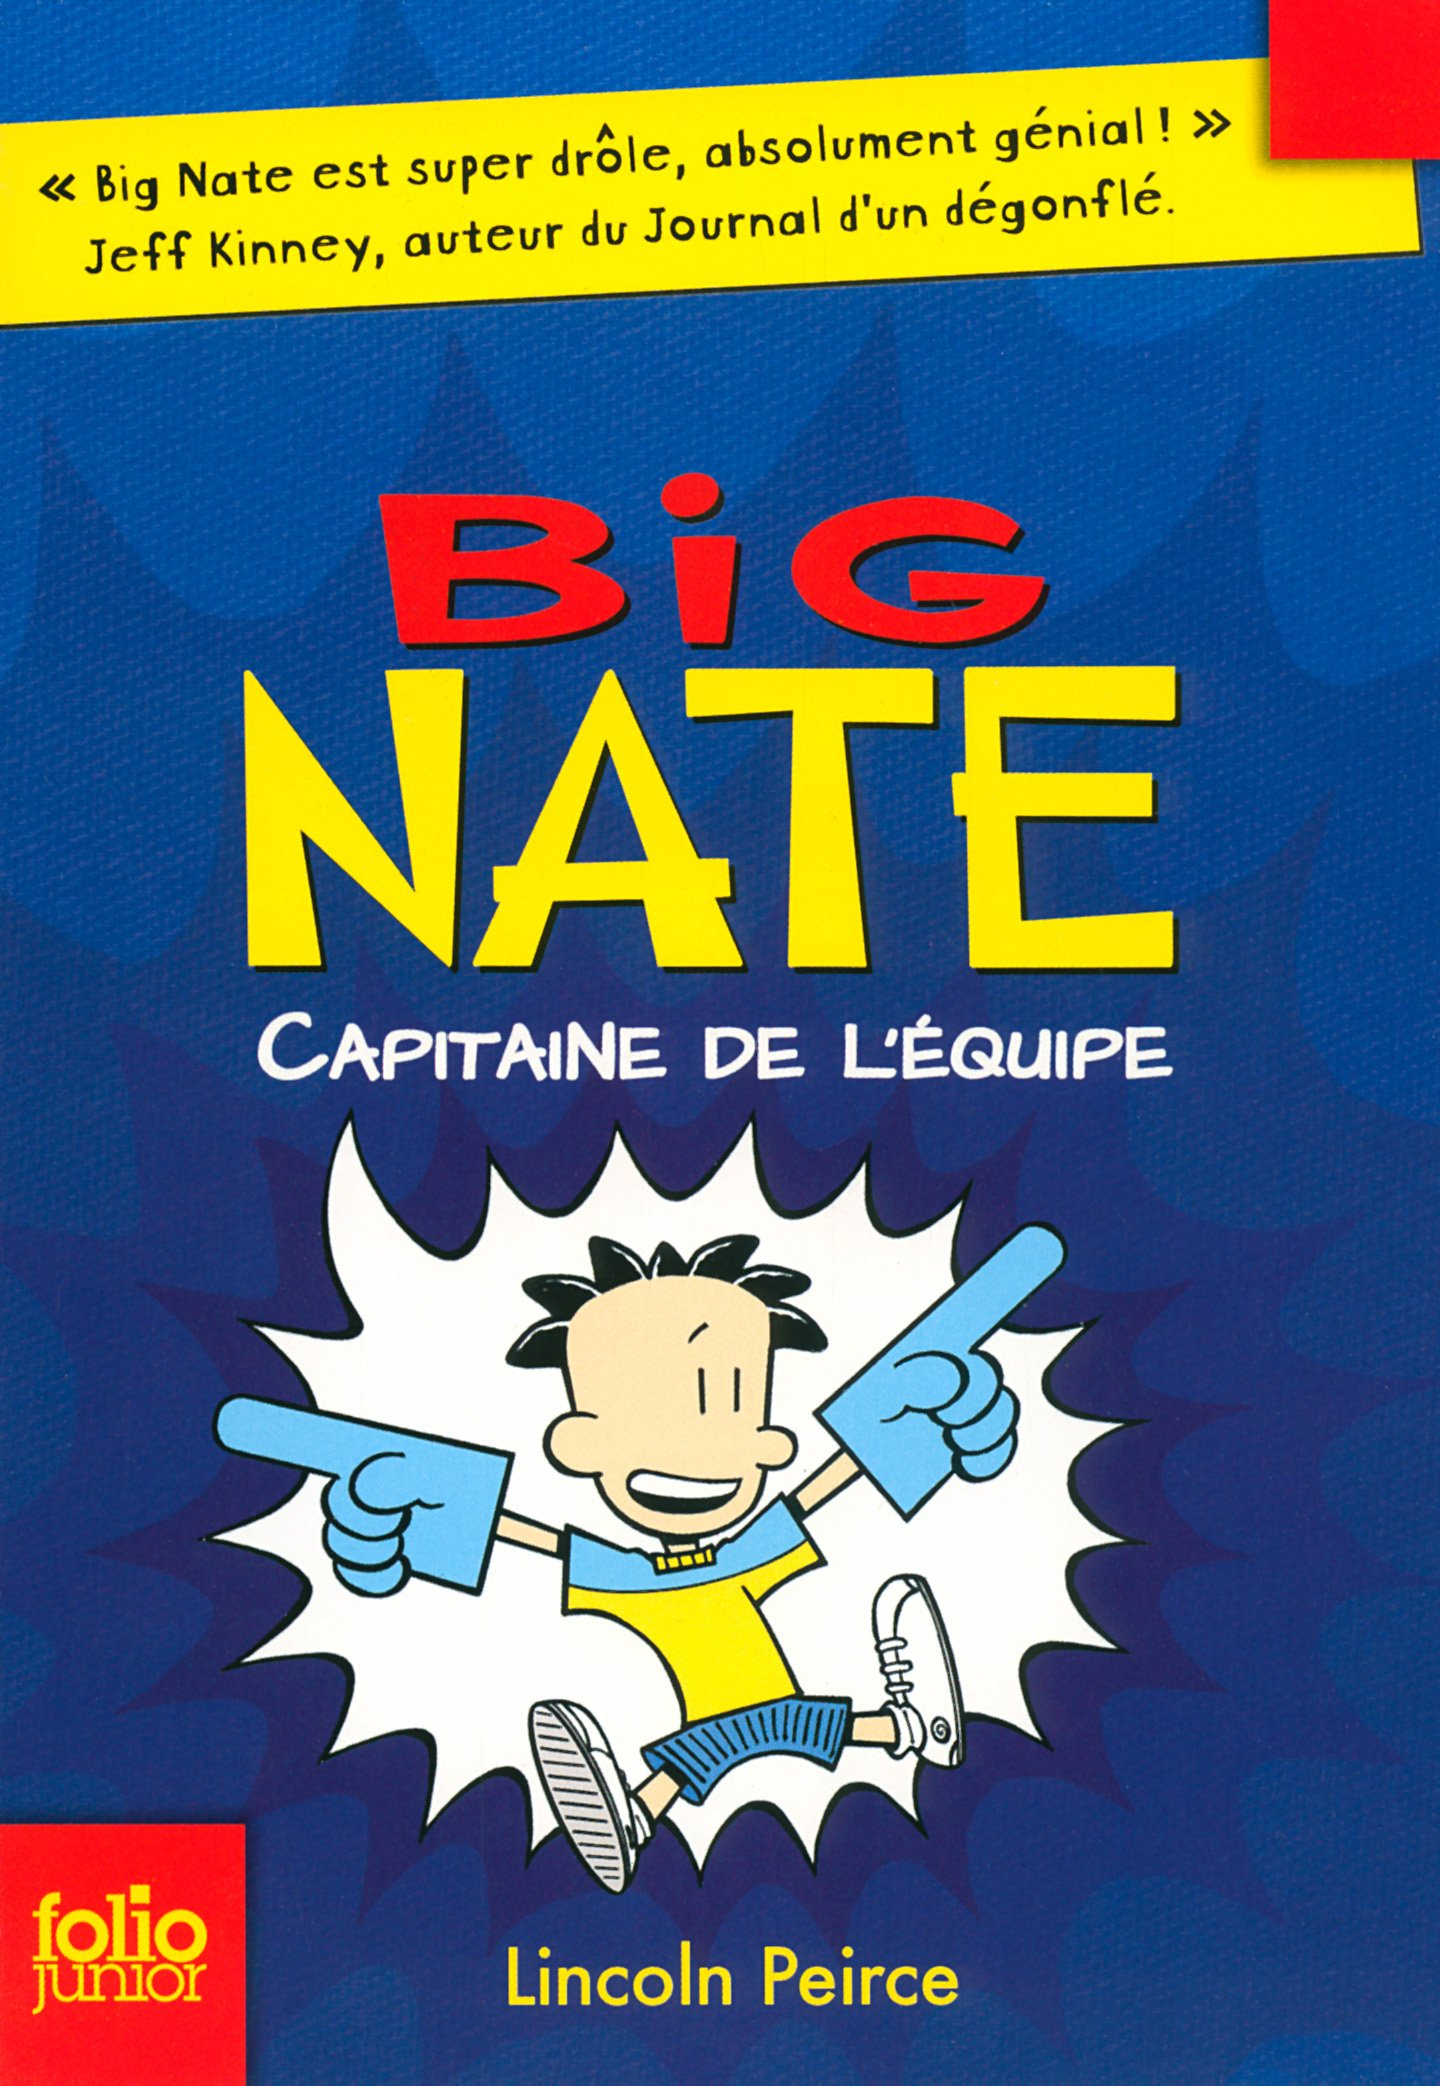 Big Nate (Tome 2) - Capitaine de l'équipe por Lincoln Peirce